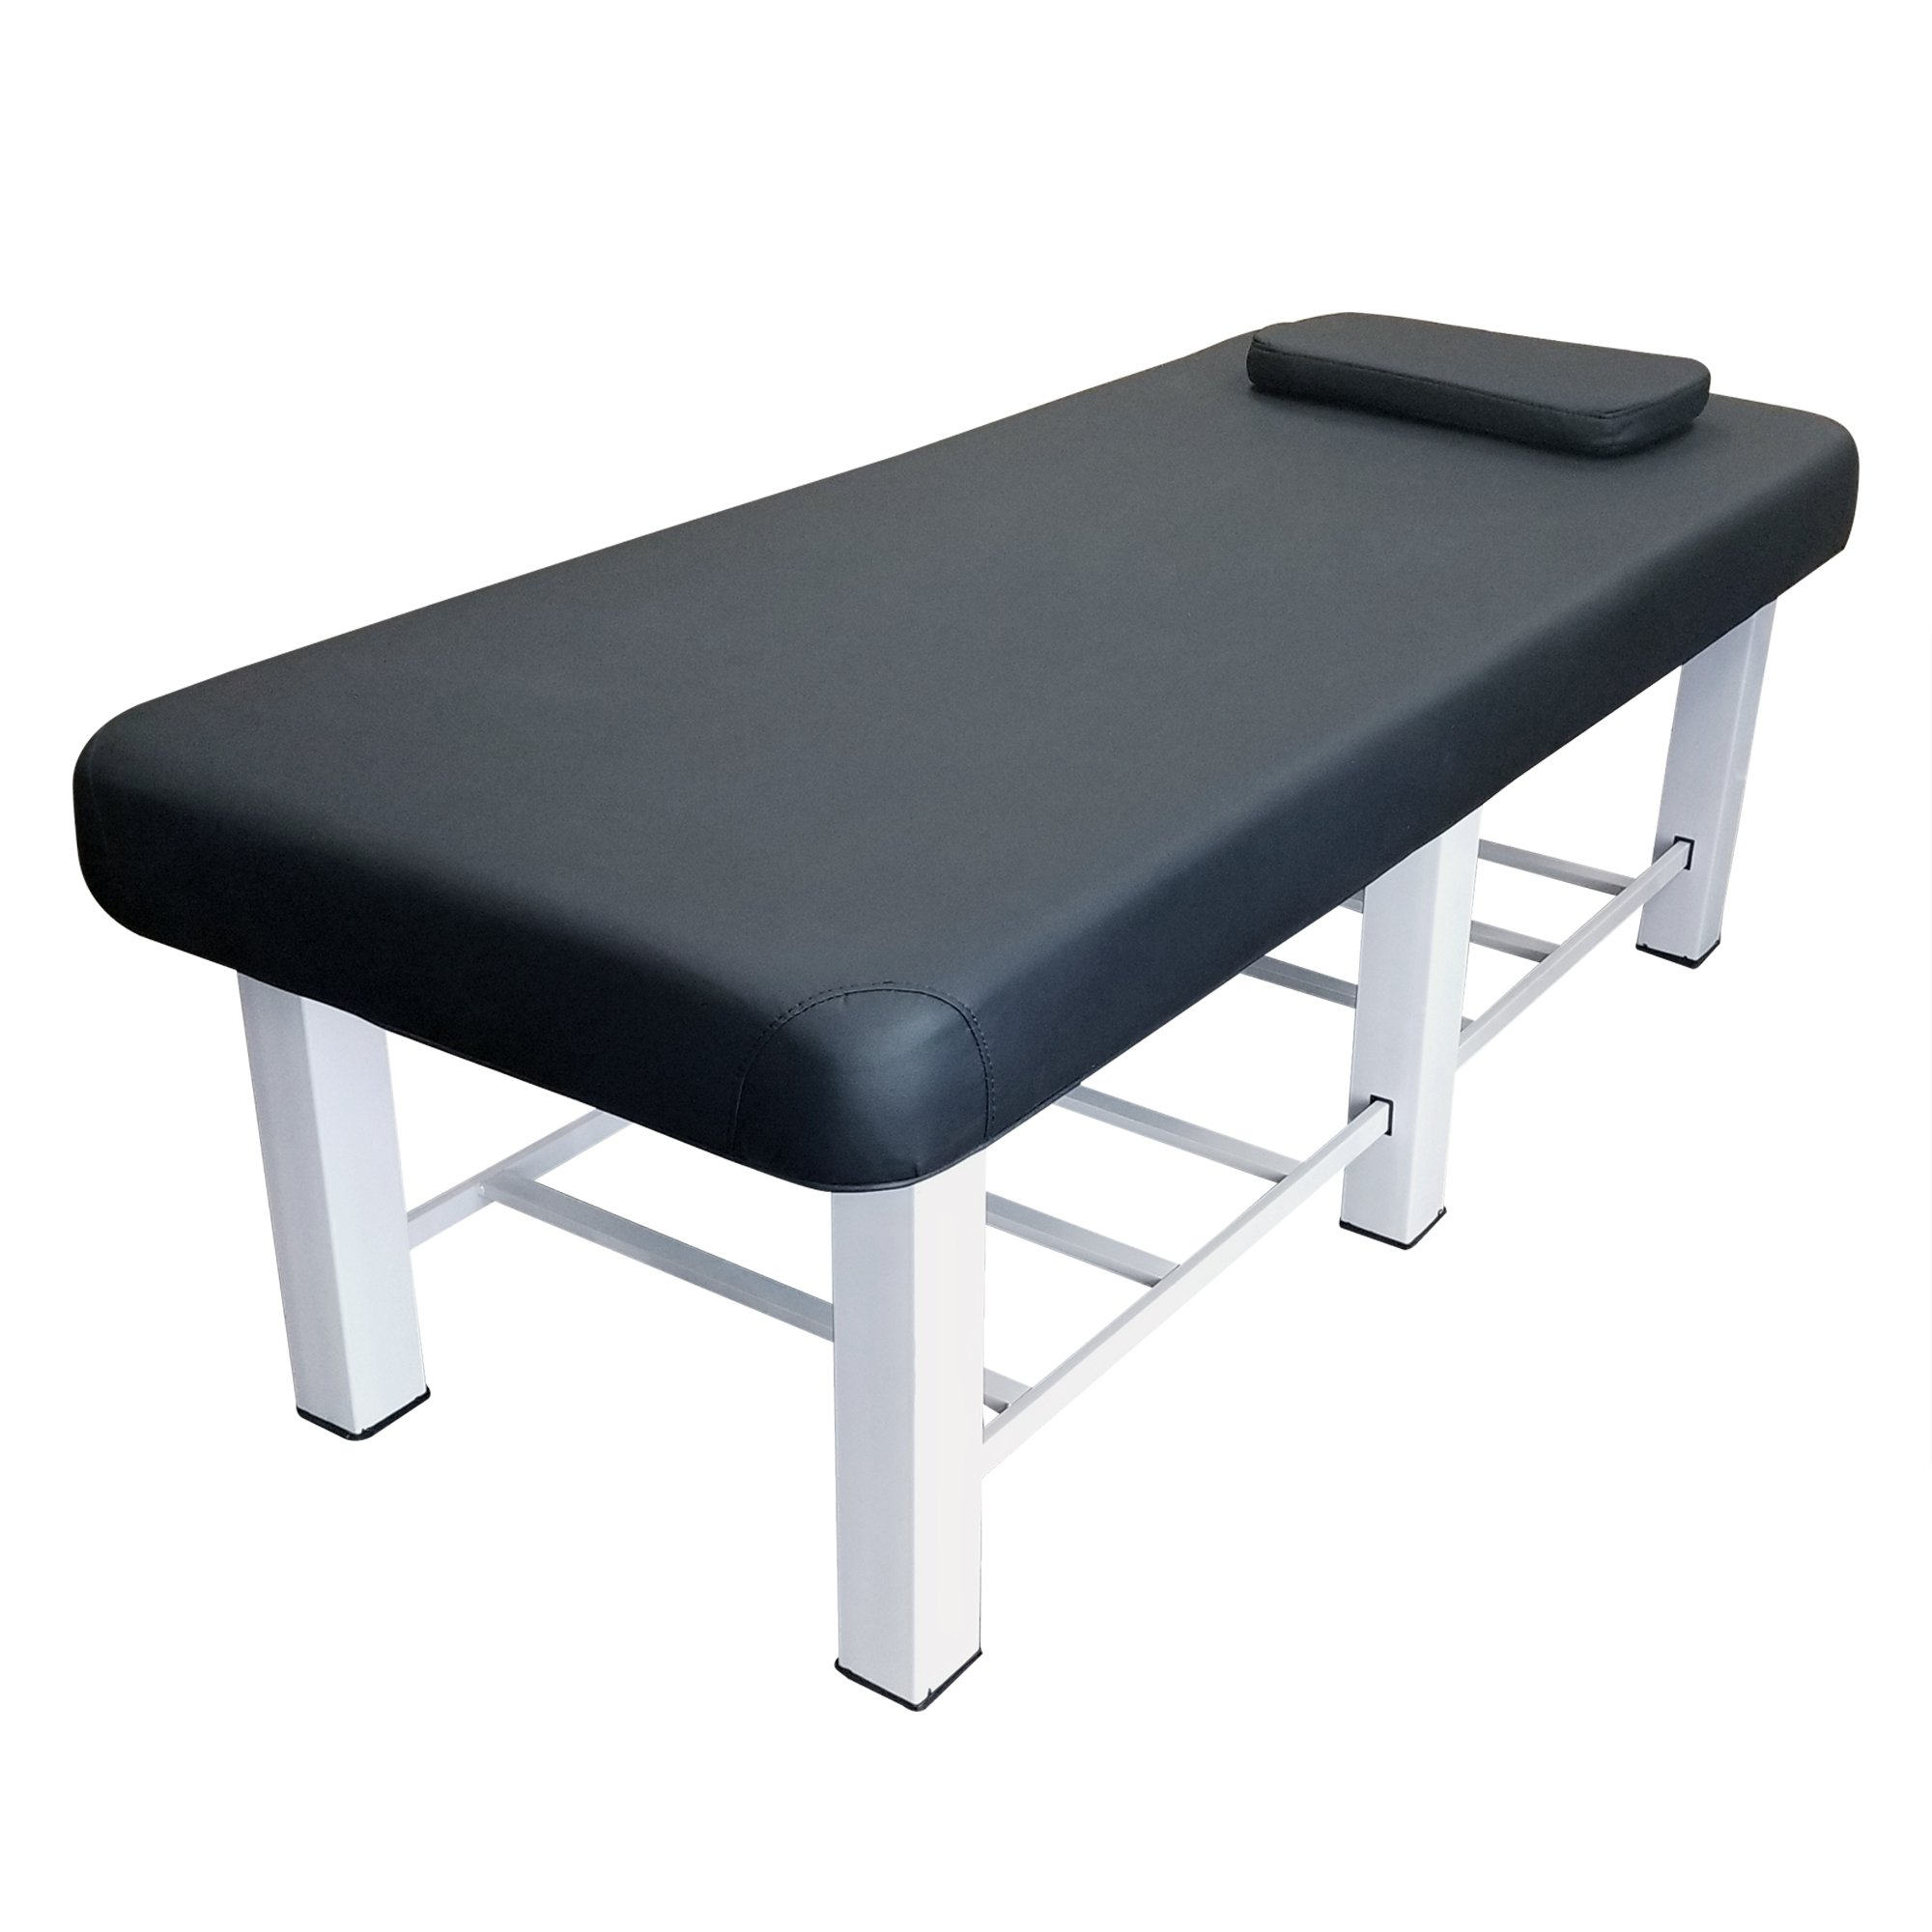 TOA 6-Legs Metal Framed Stationary Spa Massage Table Bed w/ Tray Rack (1 Black Table)